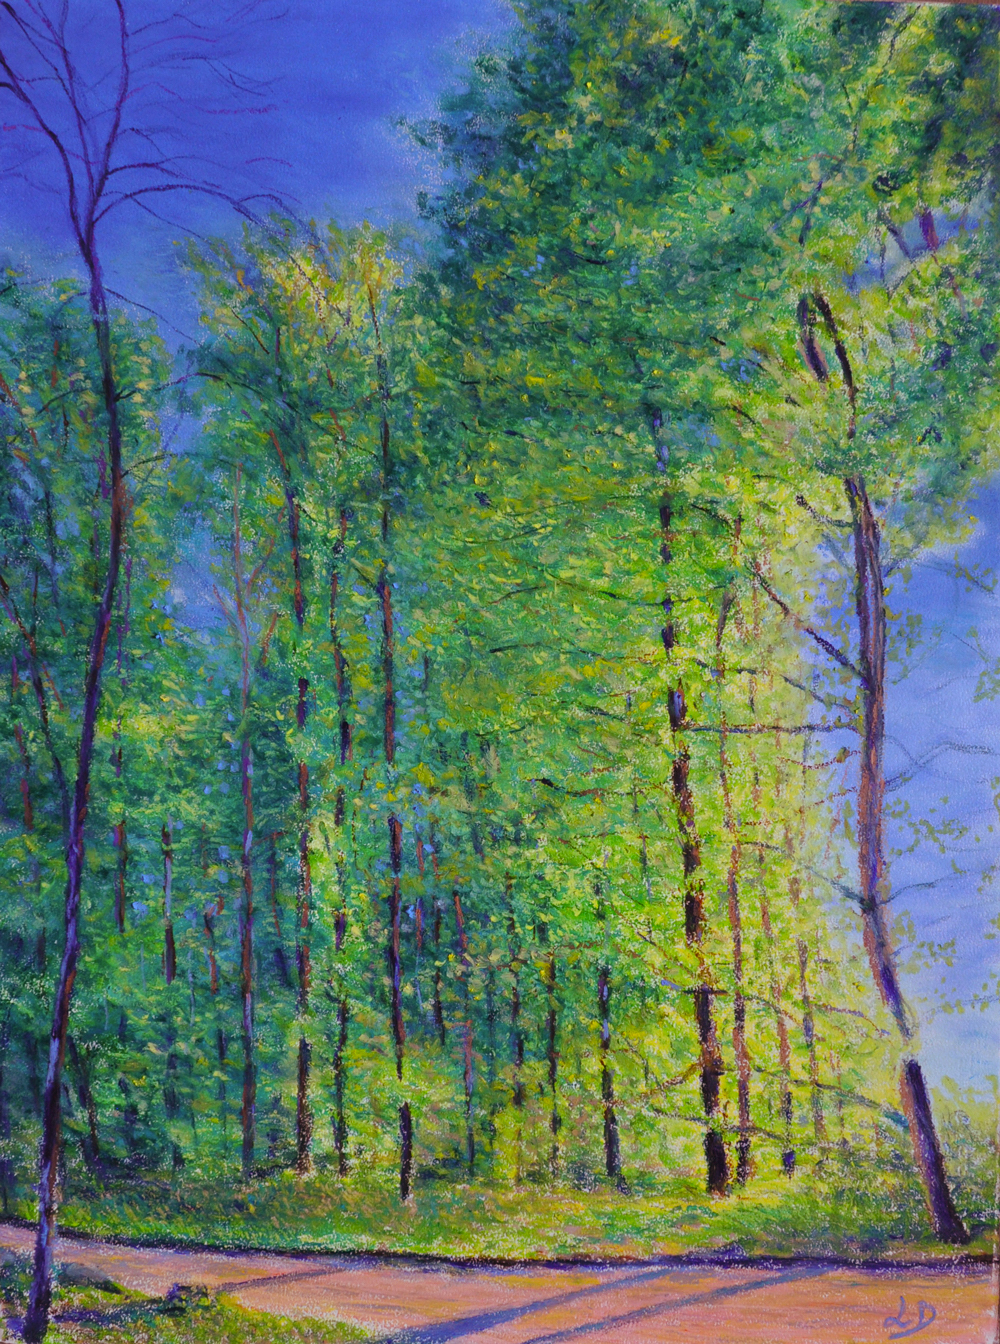 Cossonay forest no. 7. Oil pastel on paper, 75x60, 2016